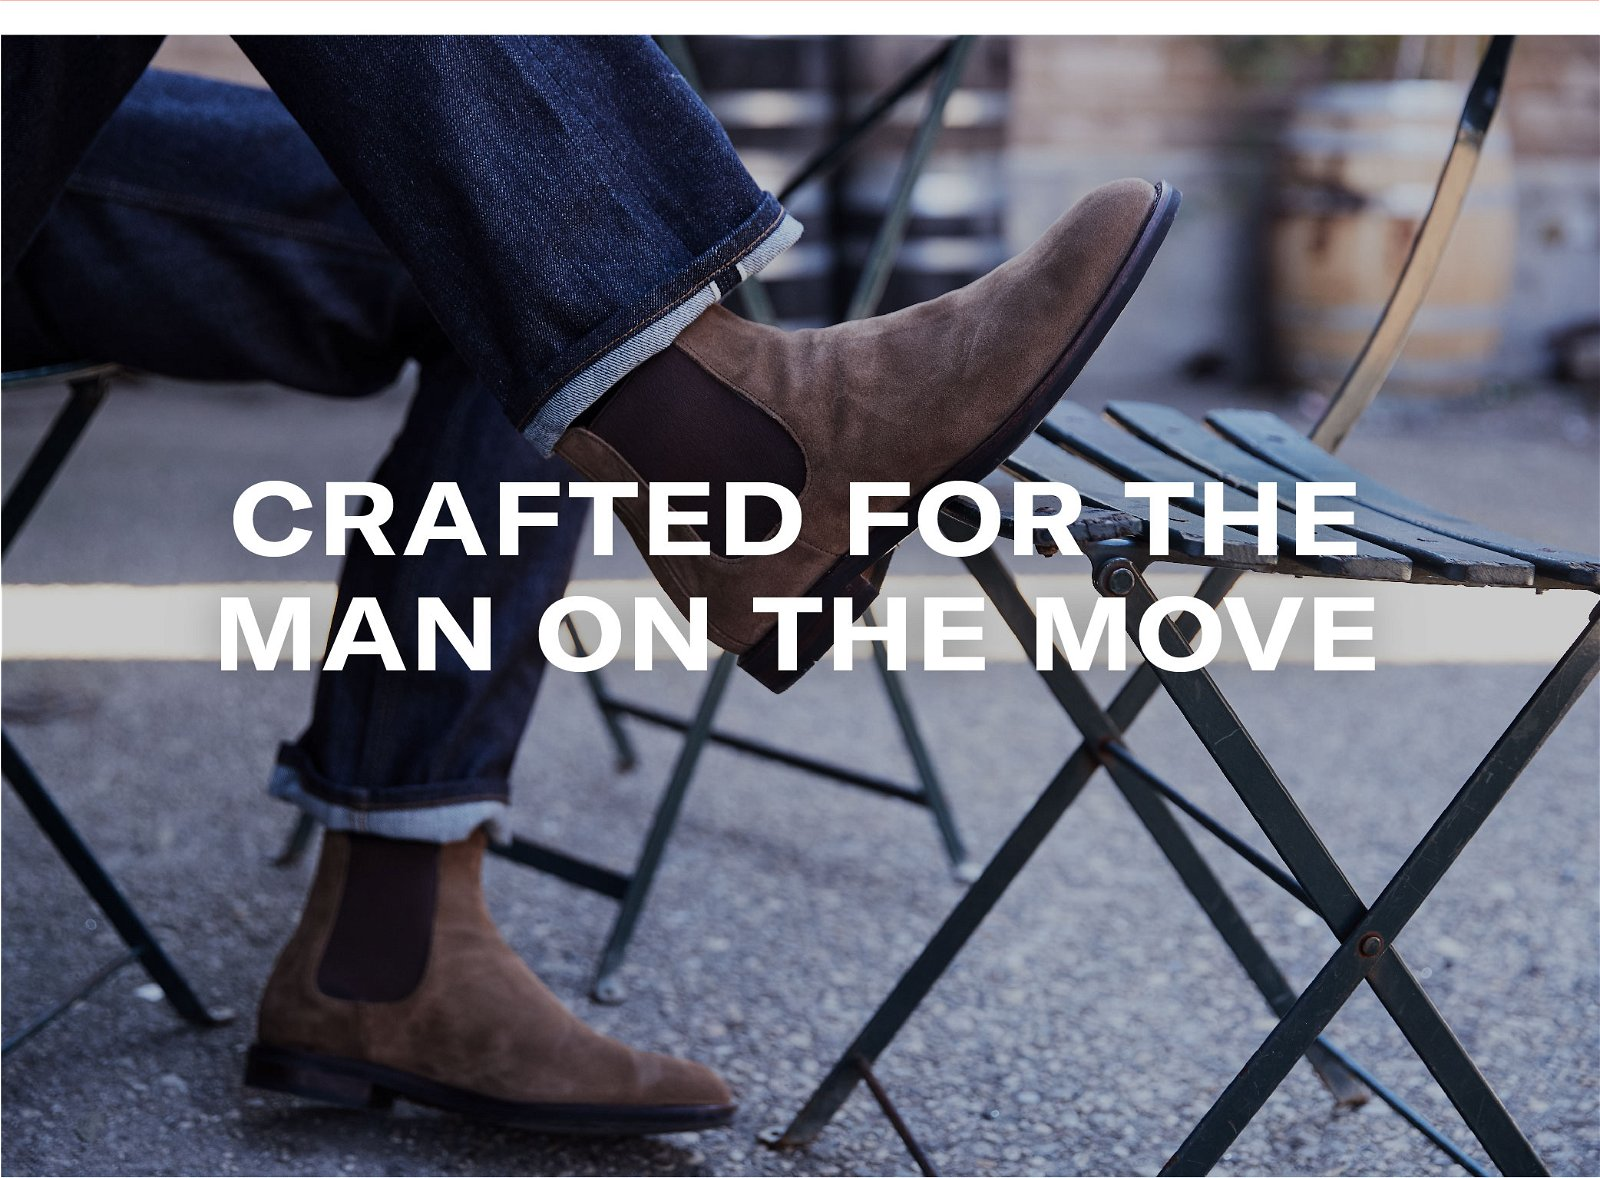 Crafted For the Man On the Move